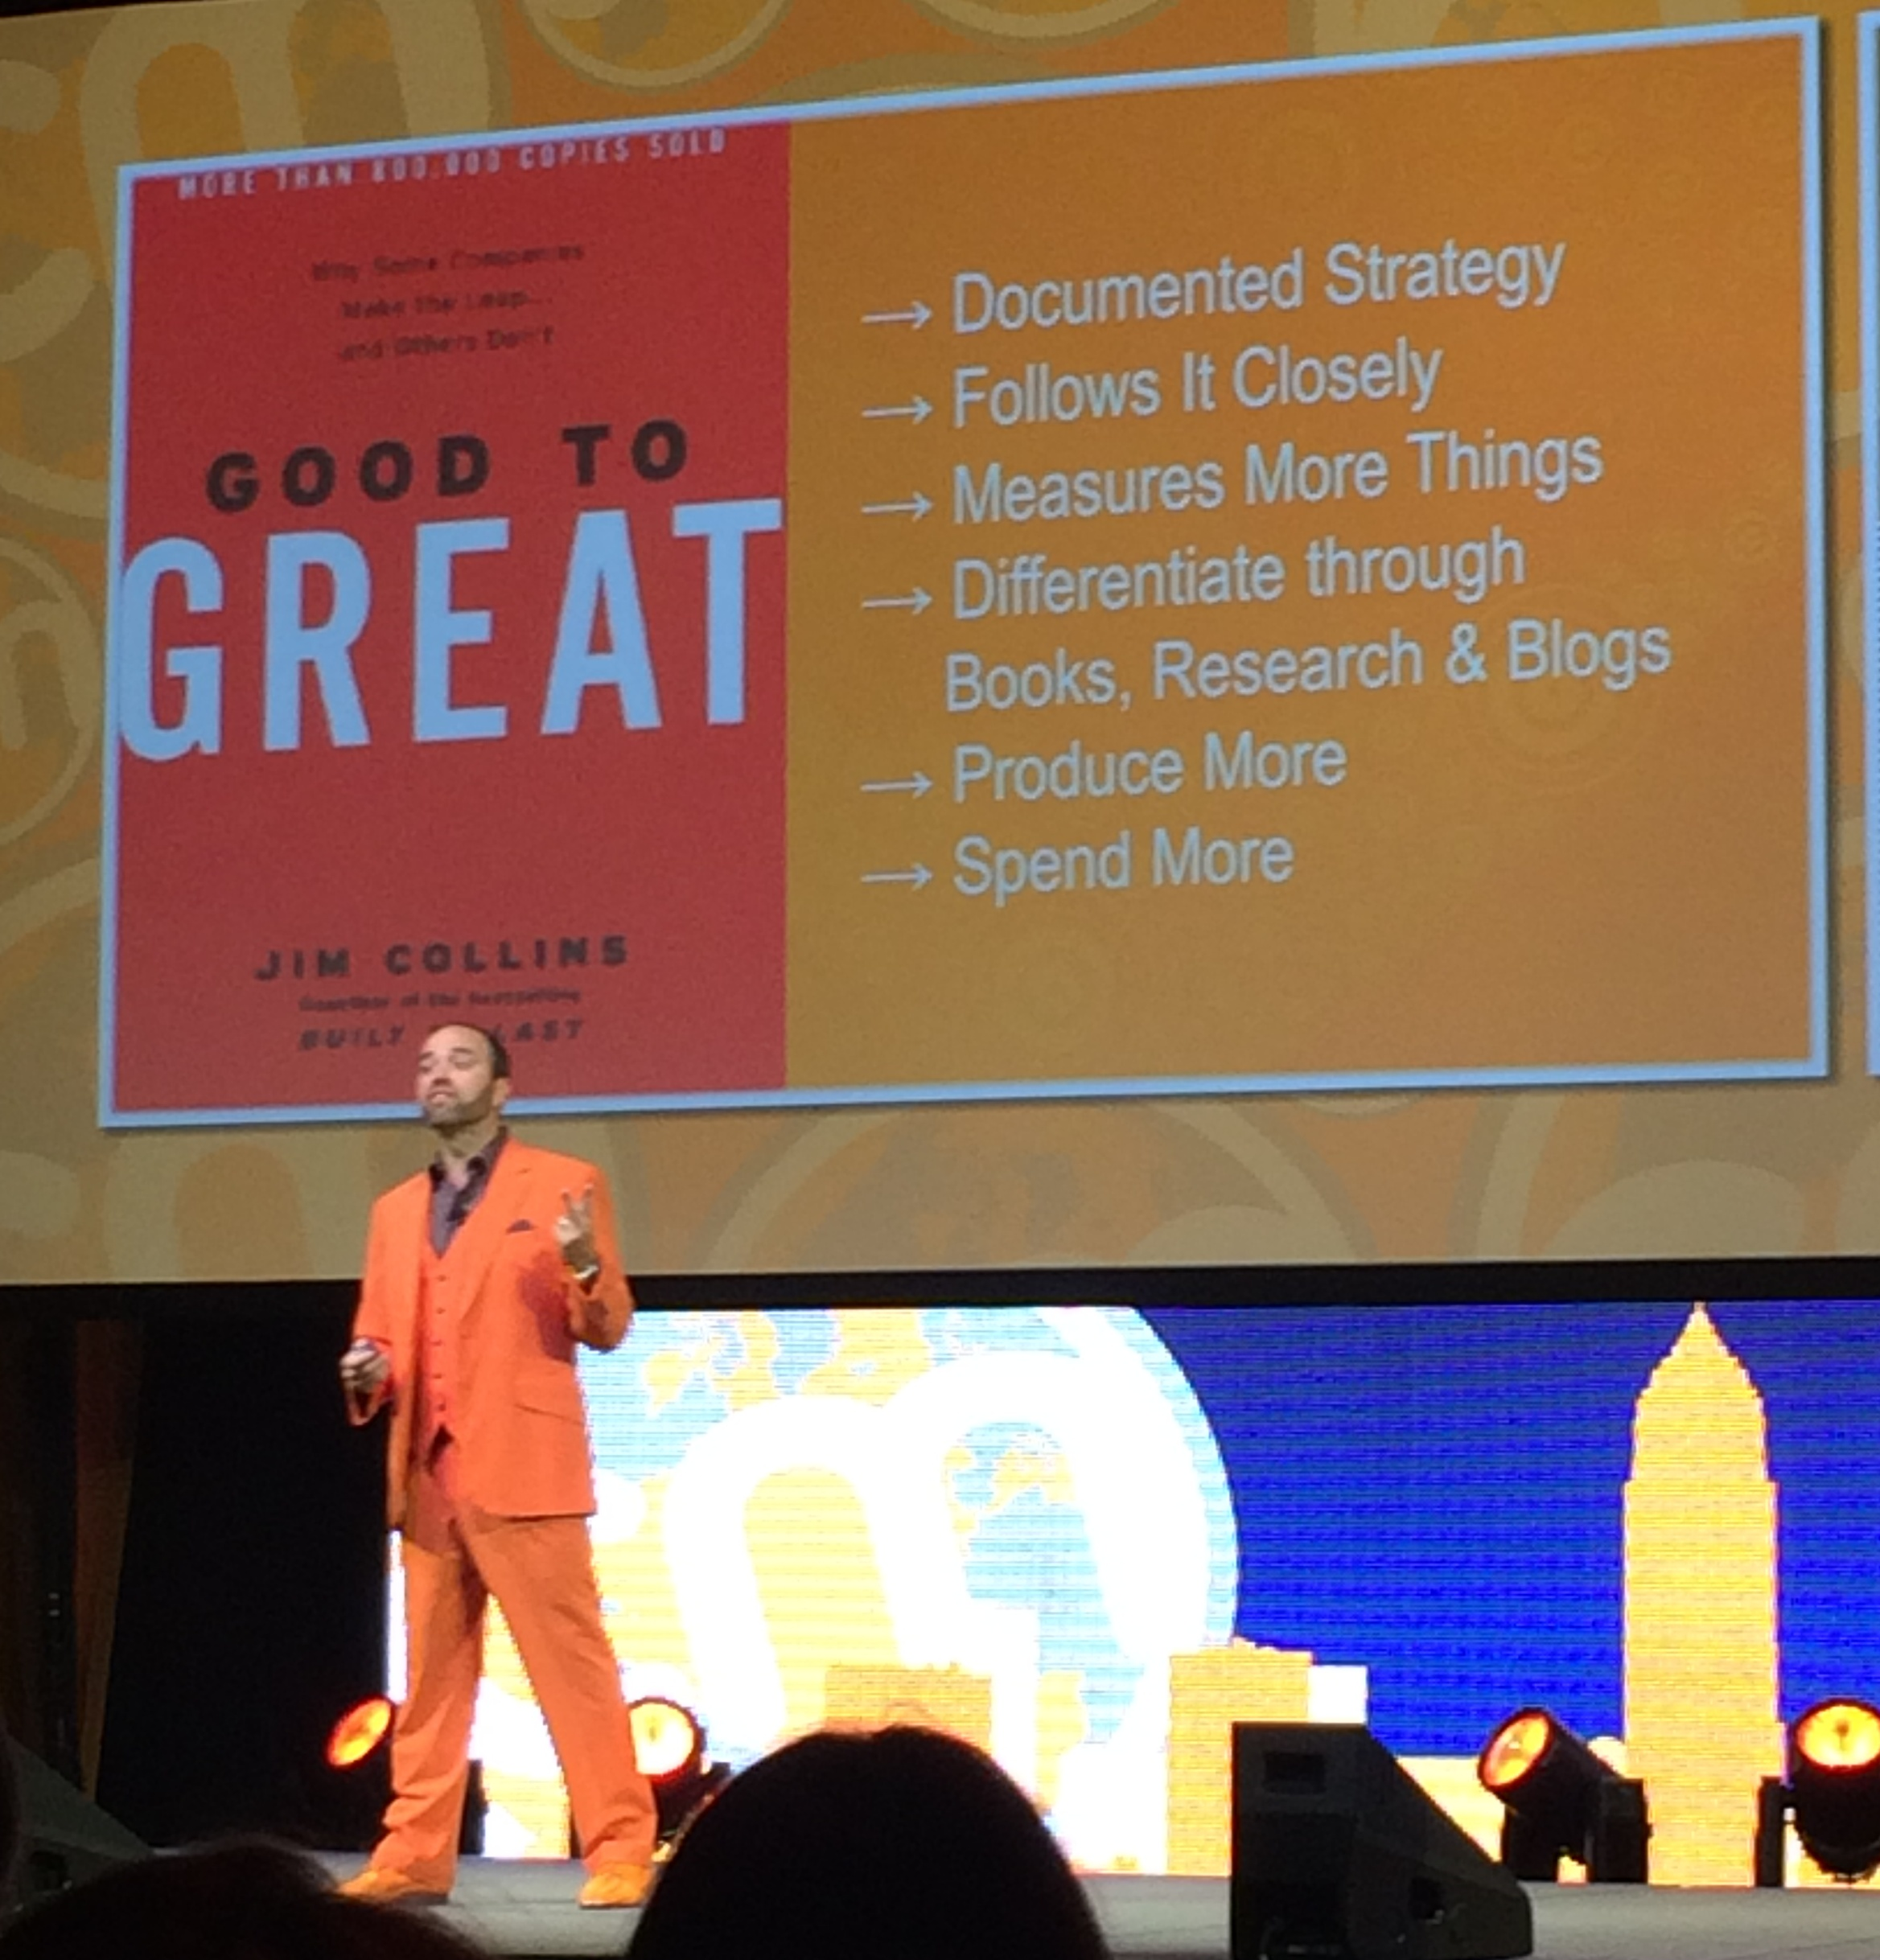 Joe Pulizzi On Stage at Content Marketing World 2014